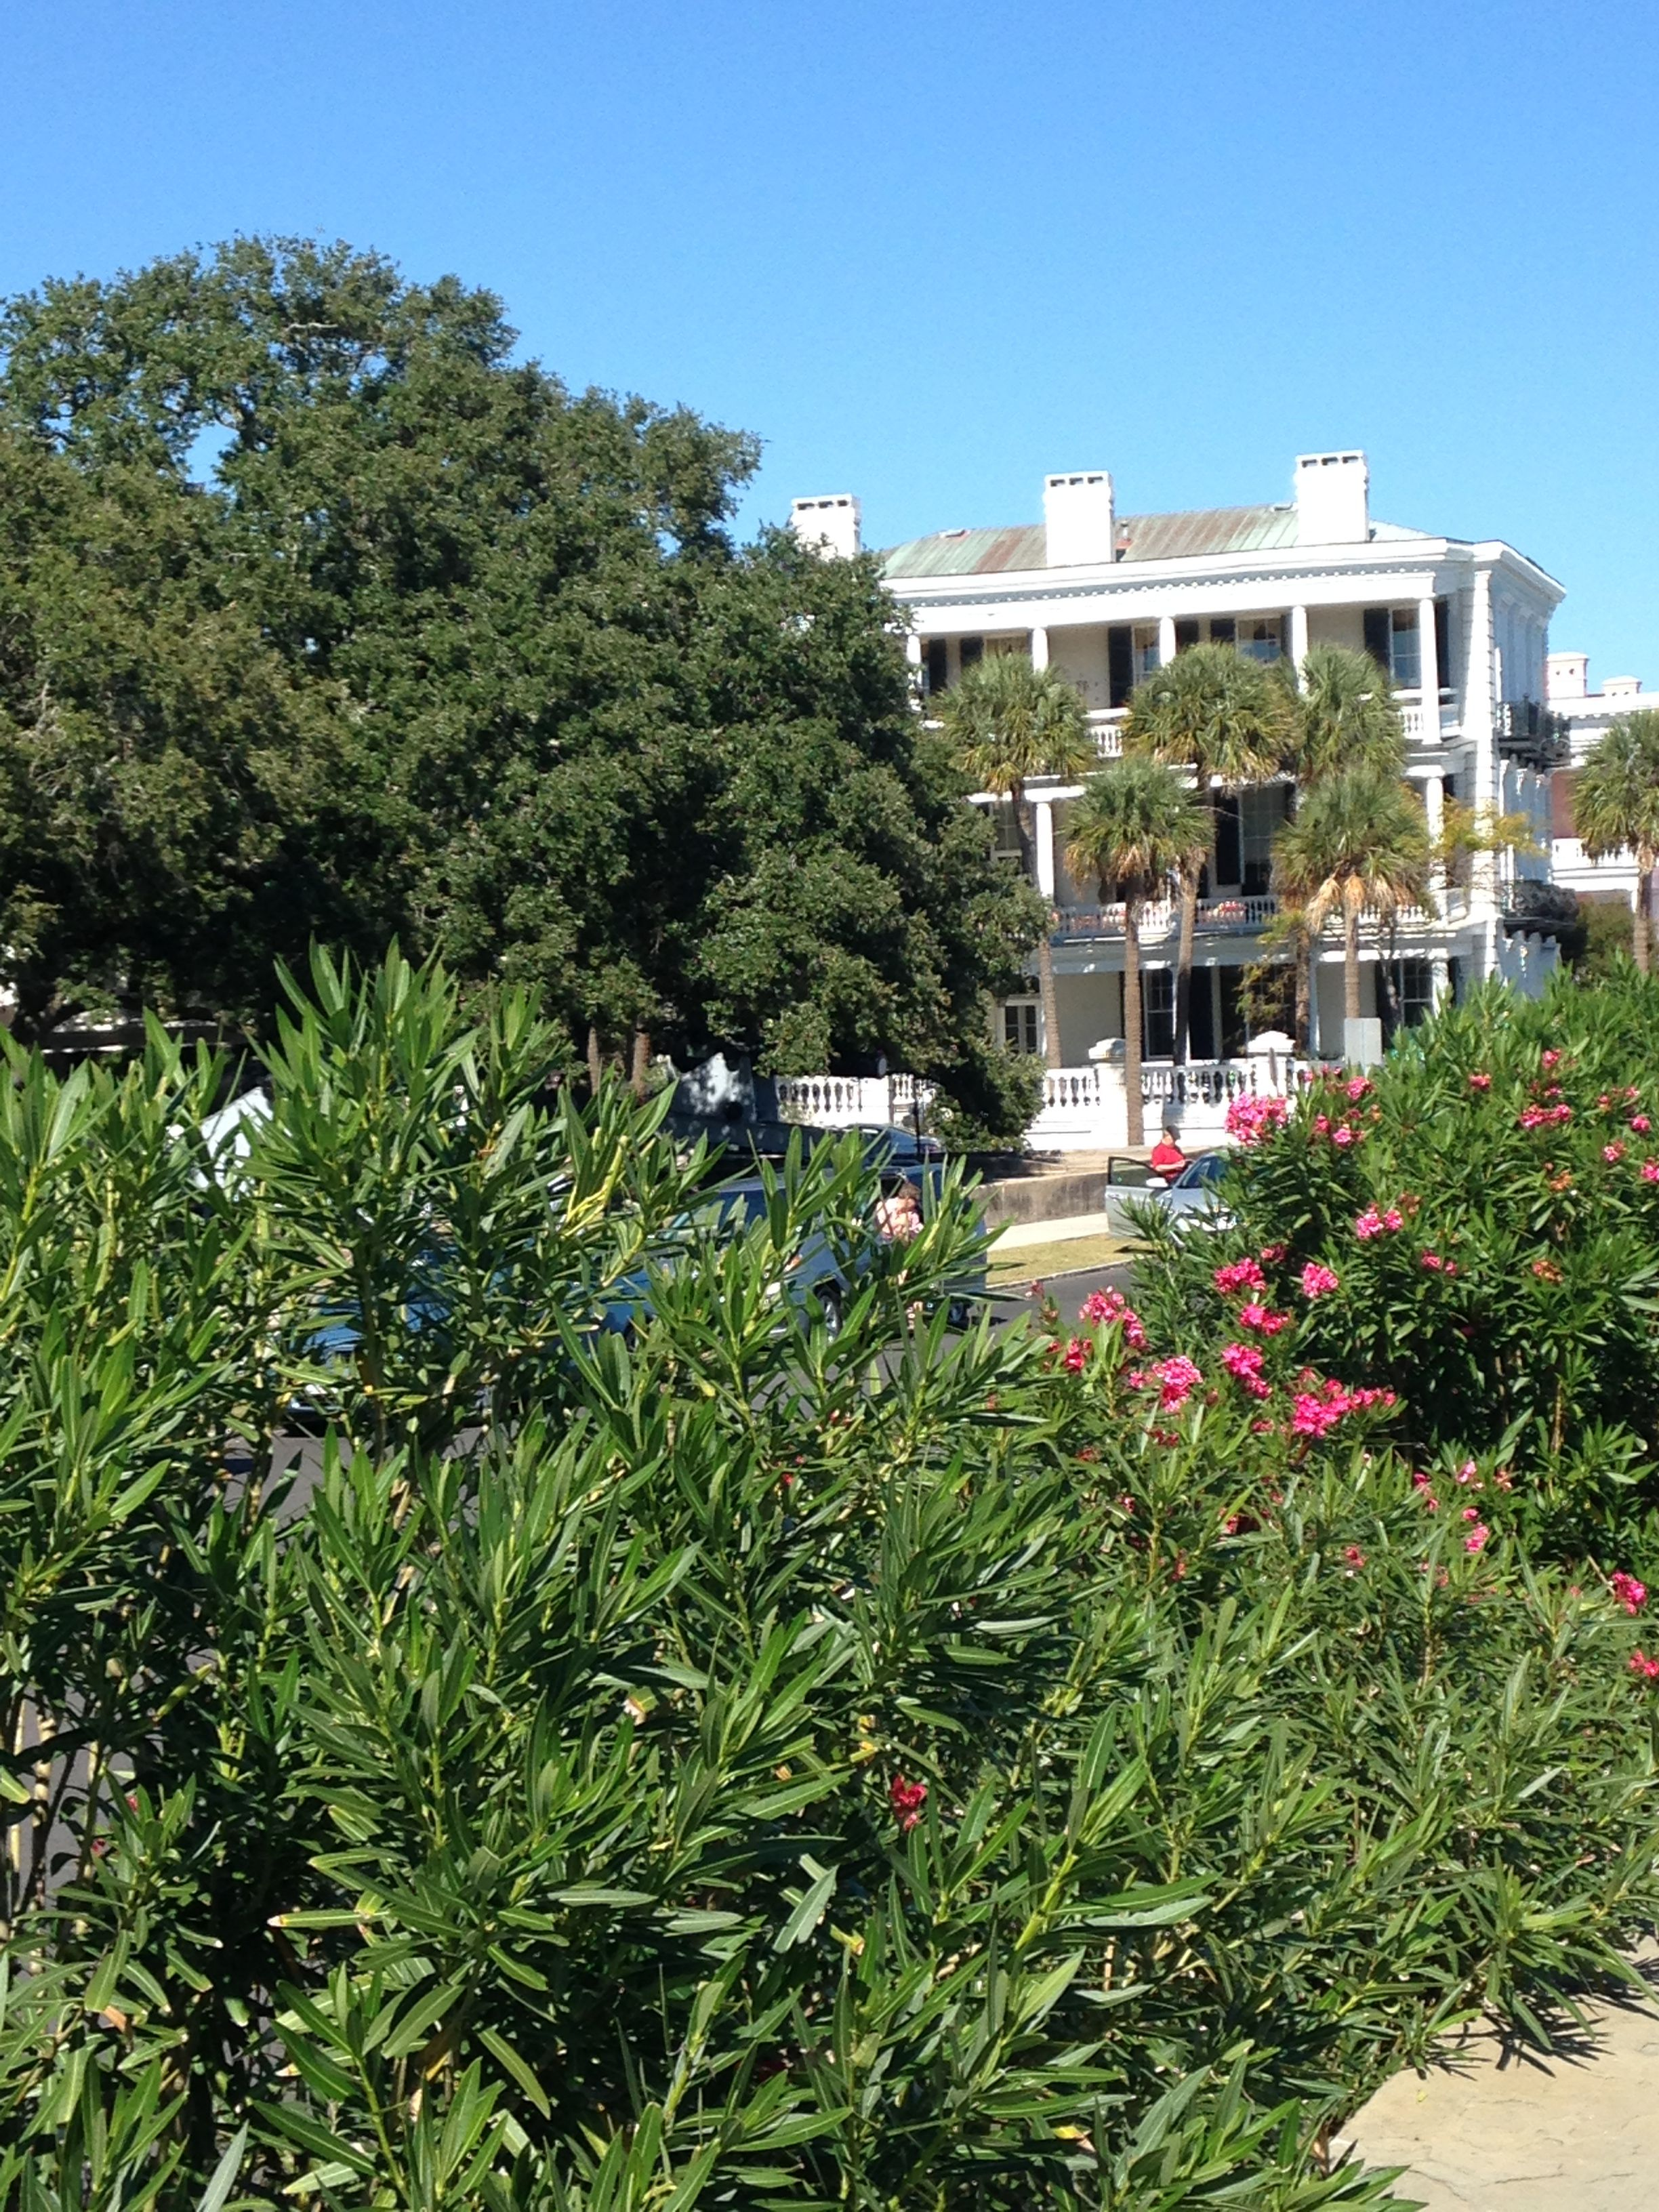 Picture From Charleston Thought The Bushes And Trees In The